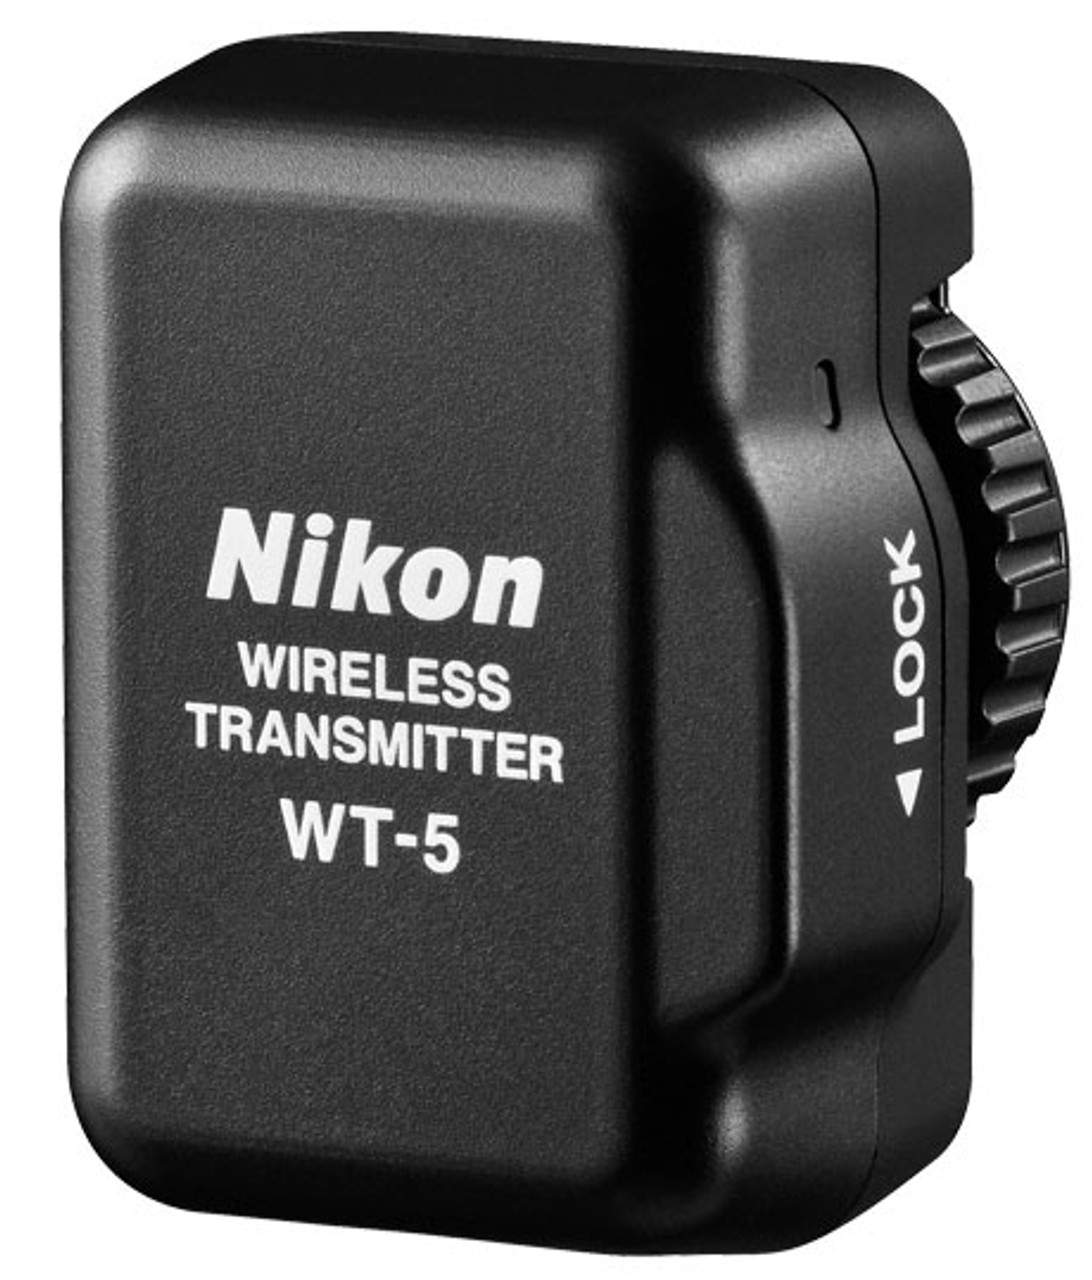 Nikon WT-5a Wireless Transmitter for D4